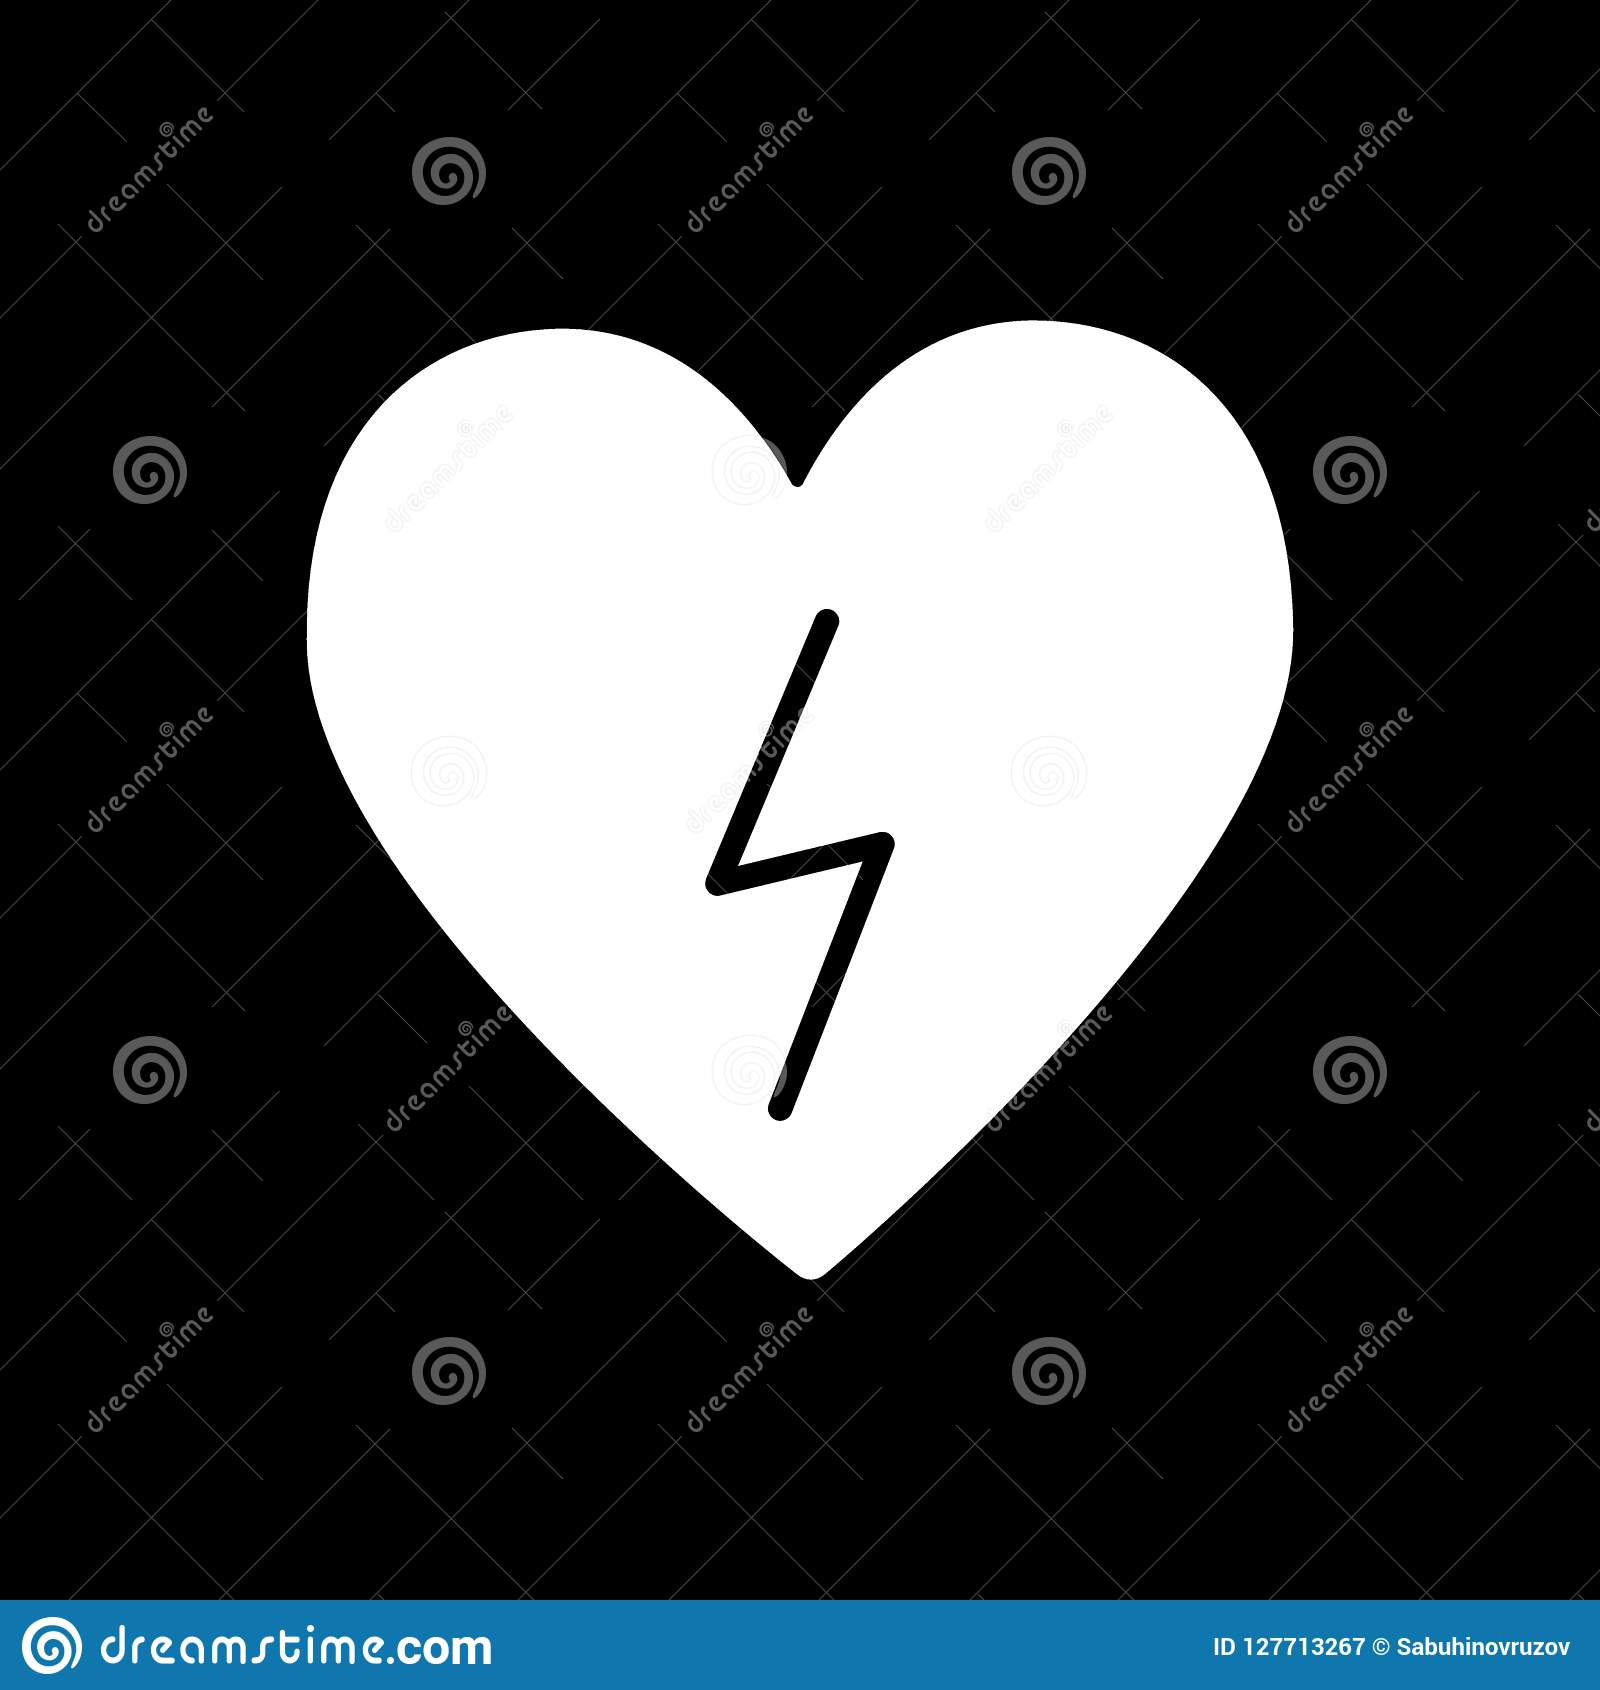 Heart With Lightning Solid Icon Heart With Lightning Bolt Vector Illustration Isolated On Black Defibrillator Glyph Stock Vector Illustration Of Cardiology Concept 127713267